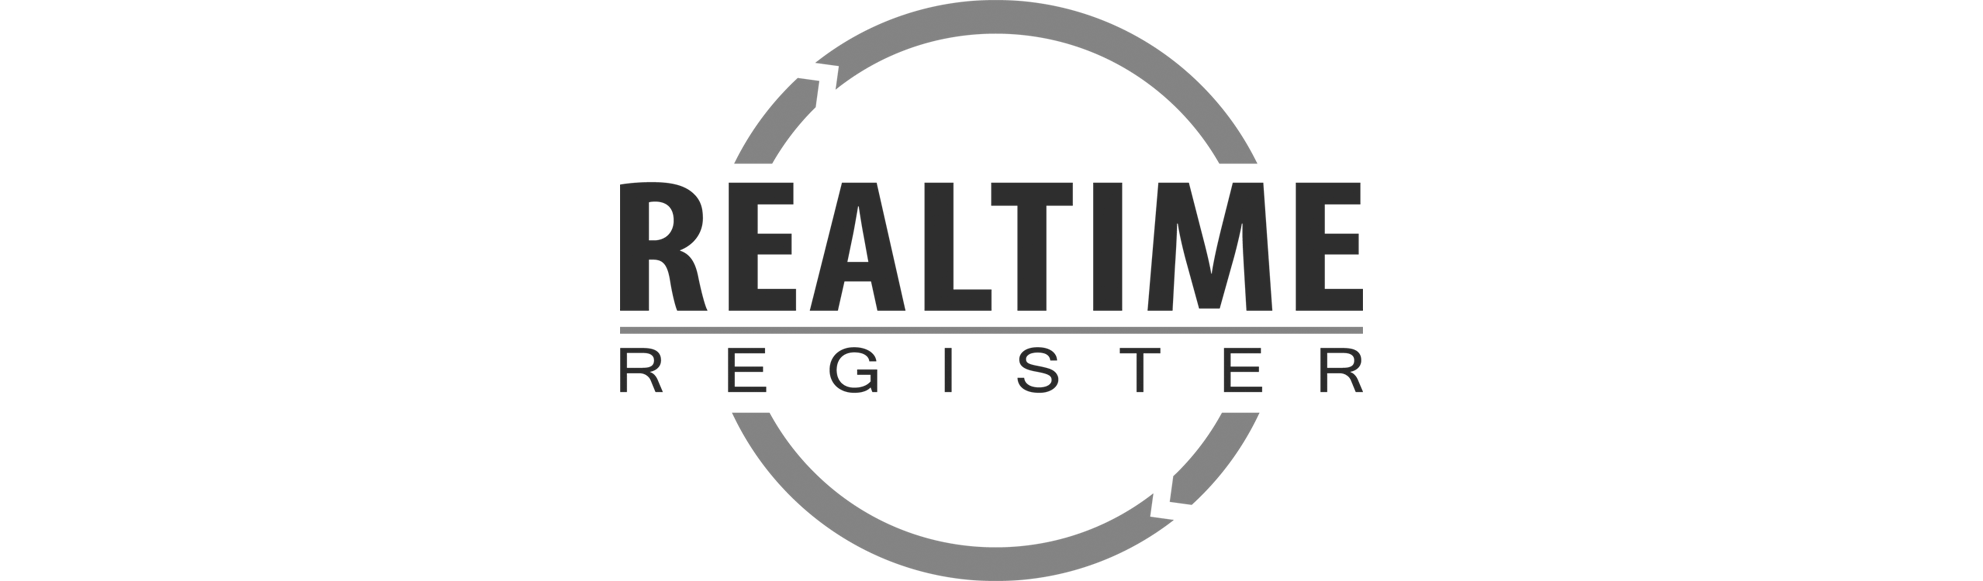 Real Time Register logo